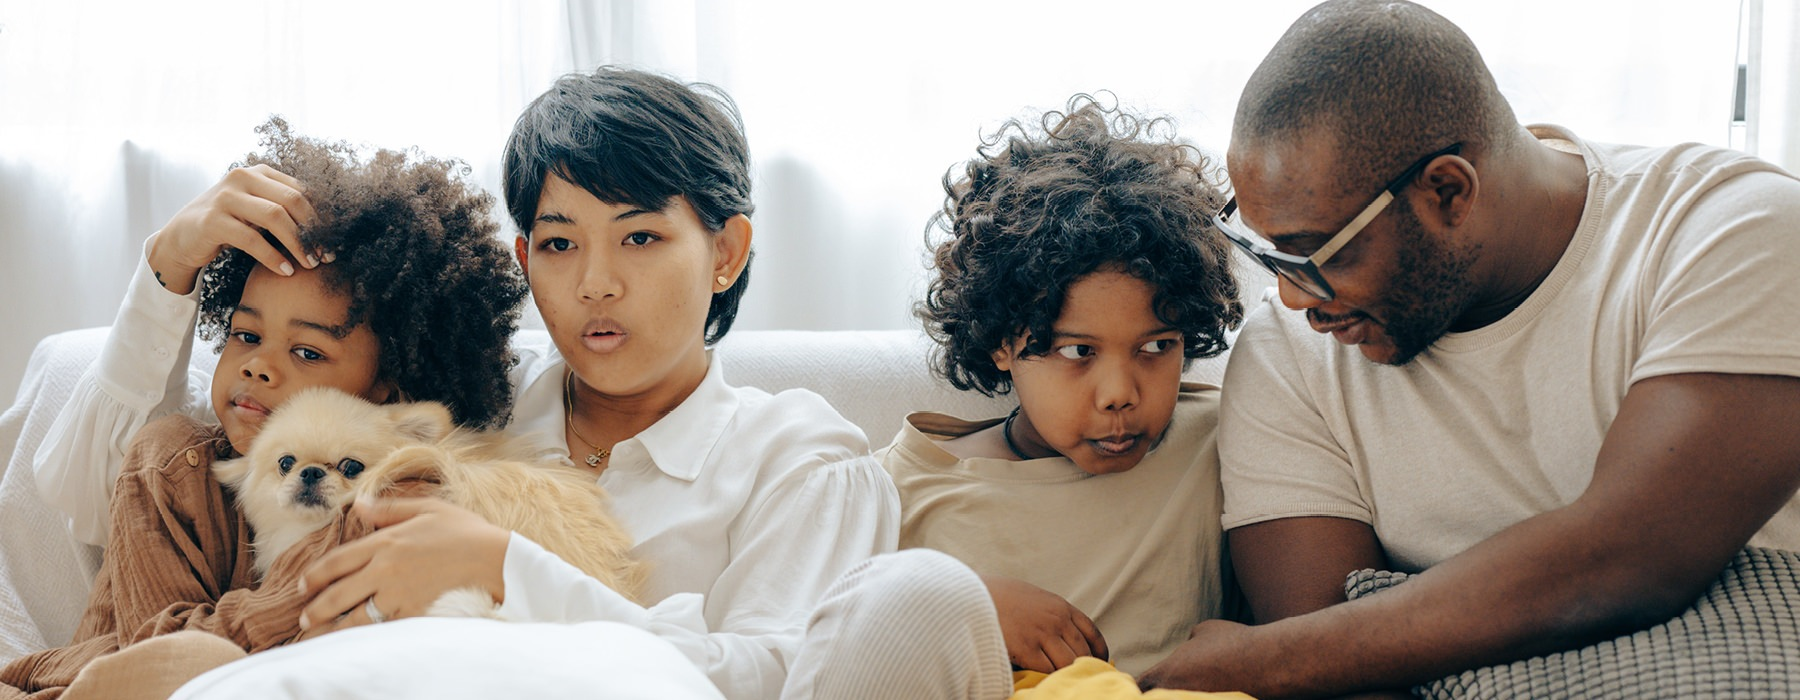 young ethnic family sits on living room couch together